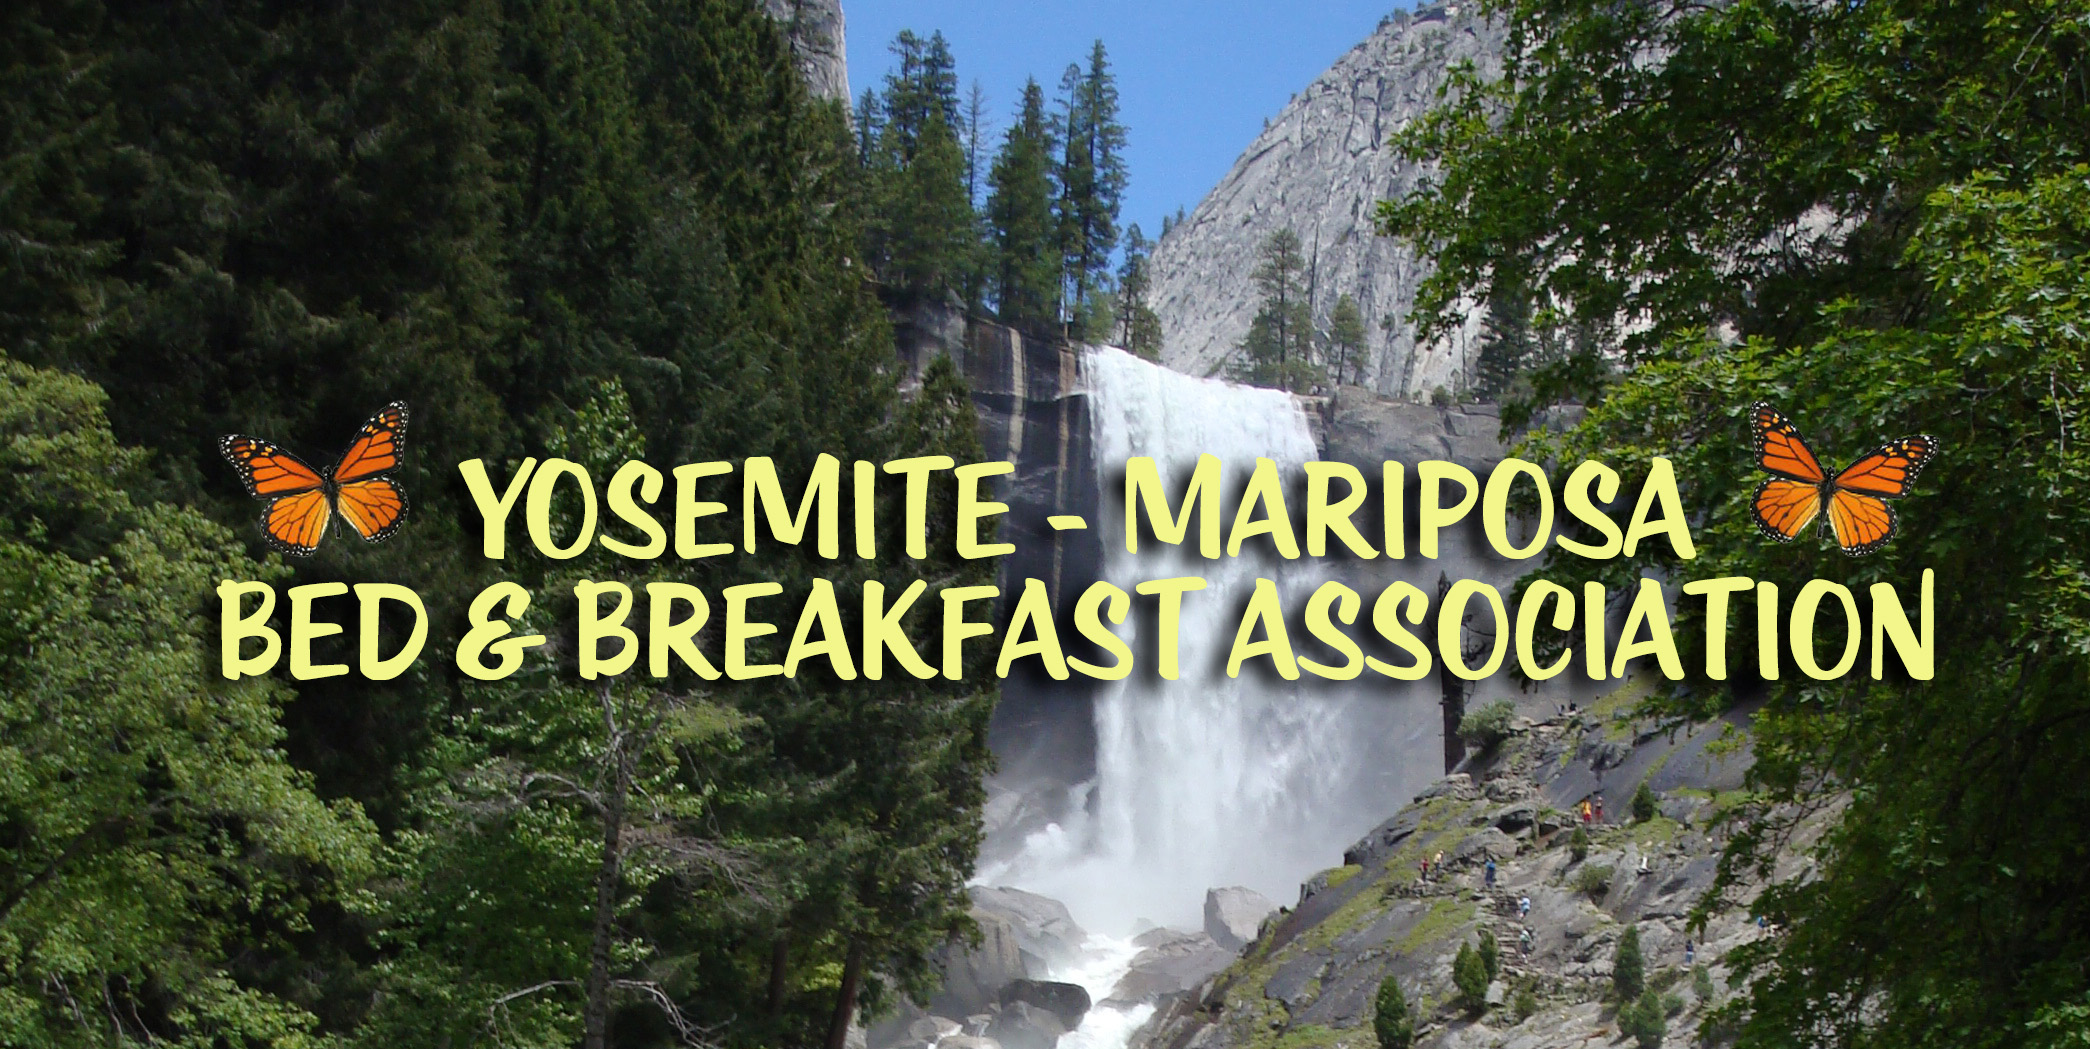 Mariposa Bed & Breakfast Association - If you find that the dates you wished to book are unavailable, please look to these other Bed & Breakfast's in the Yosemite area for availability. Click on box below